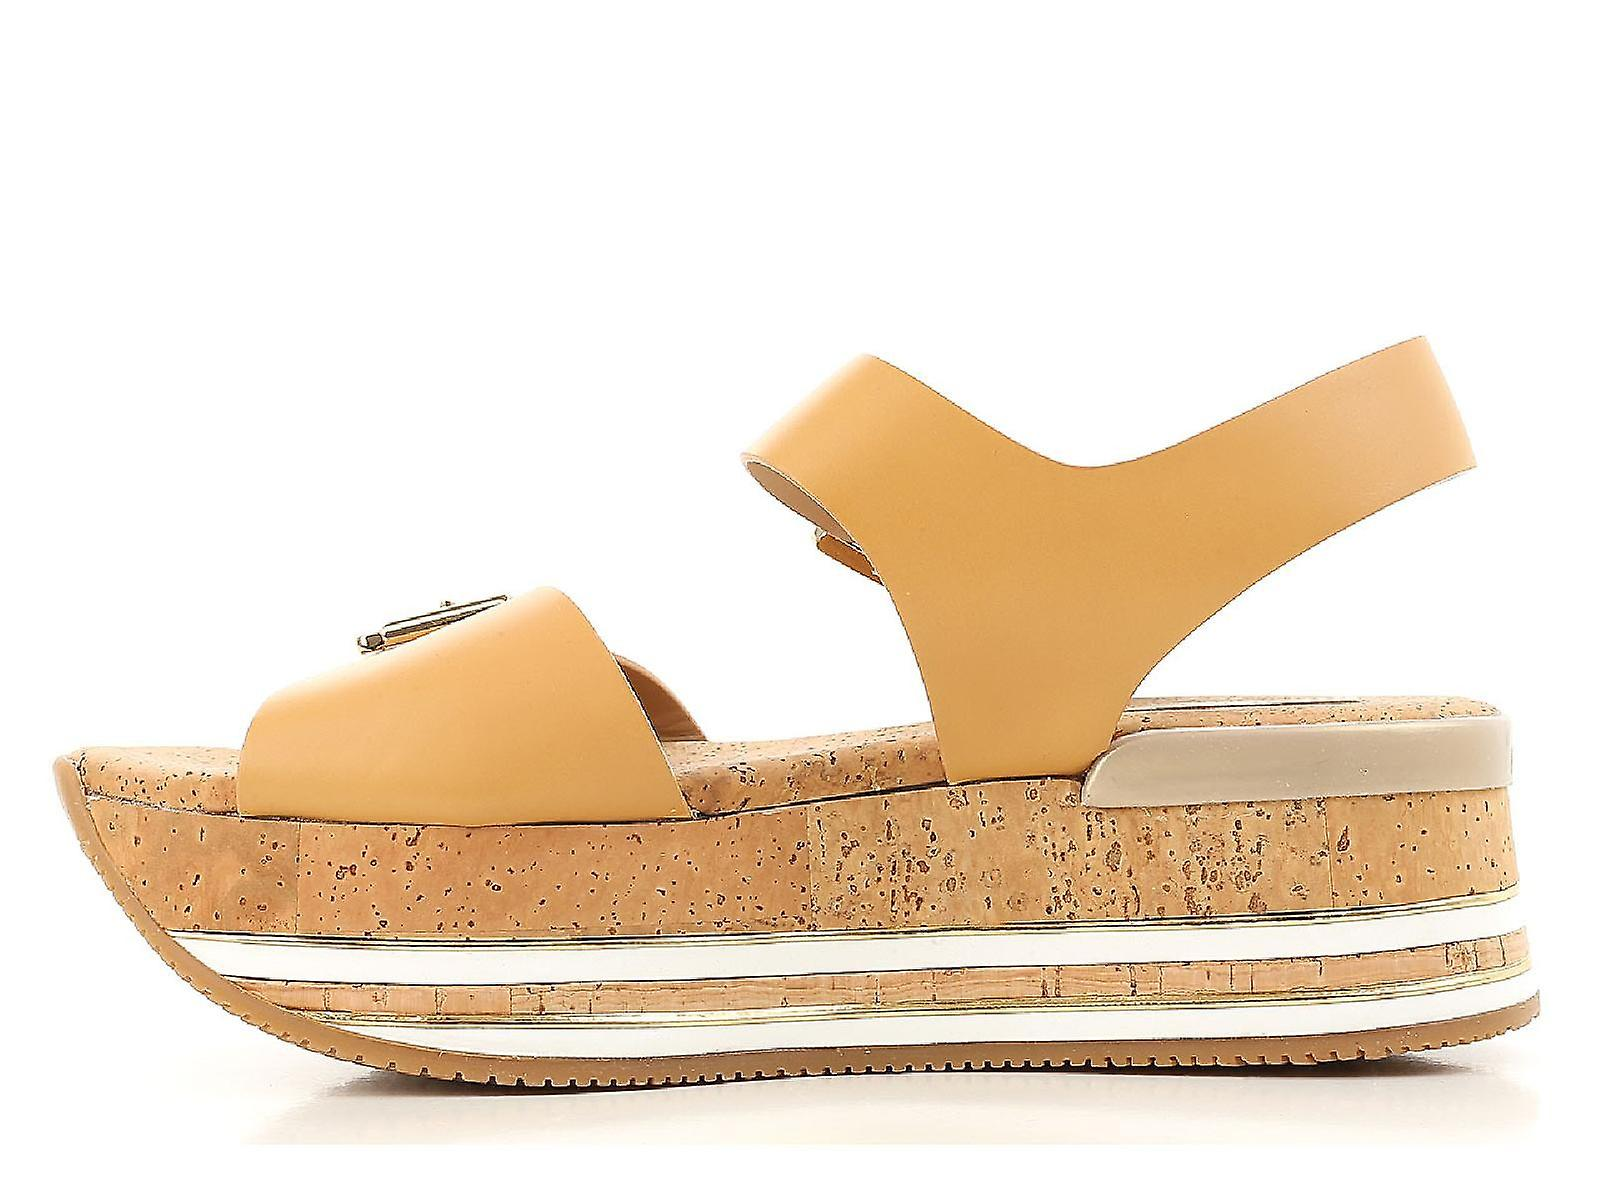 Hogan Hogan Hogan flat wedges sandals shoes in tan leather b60b87